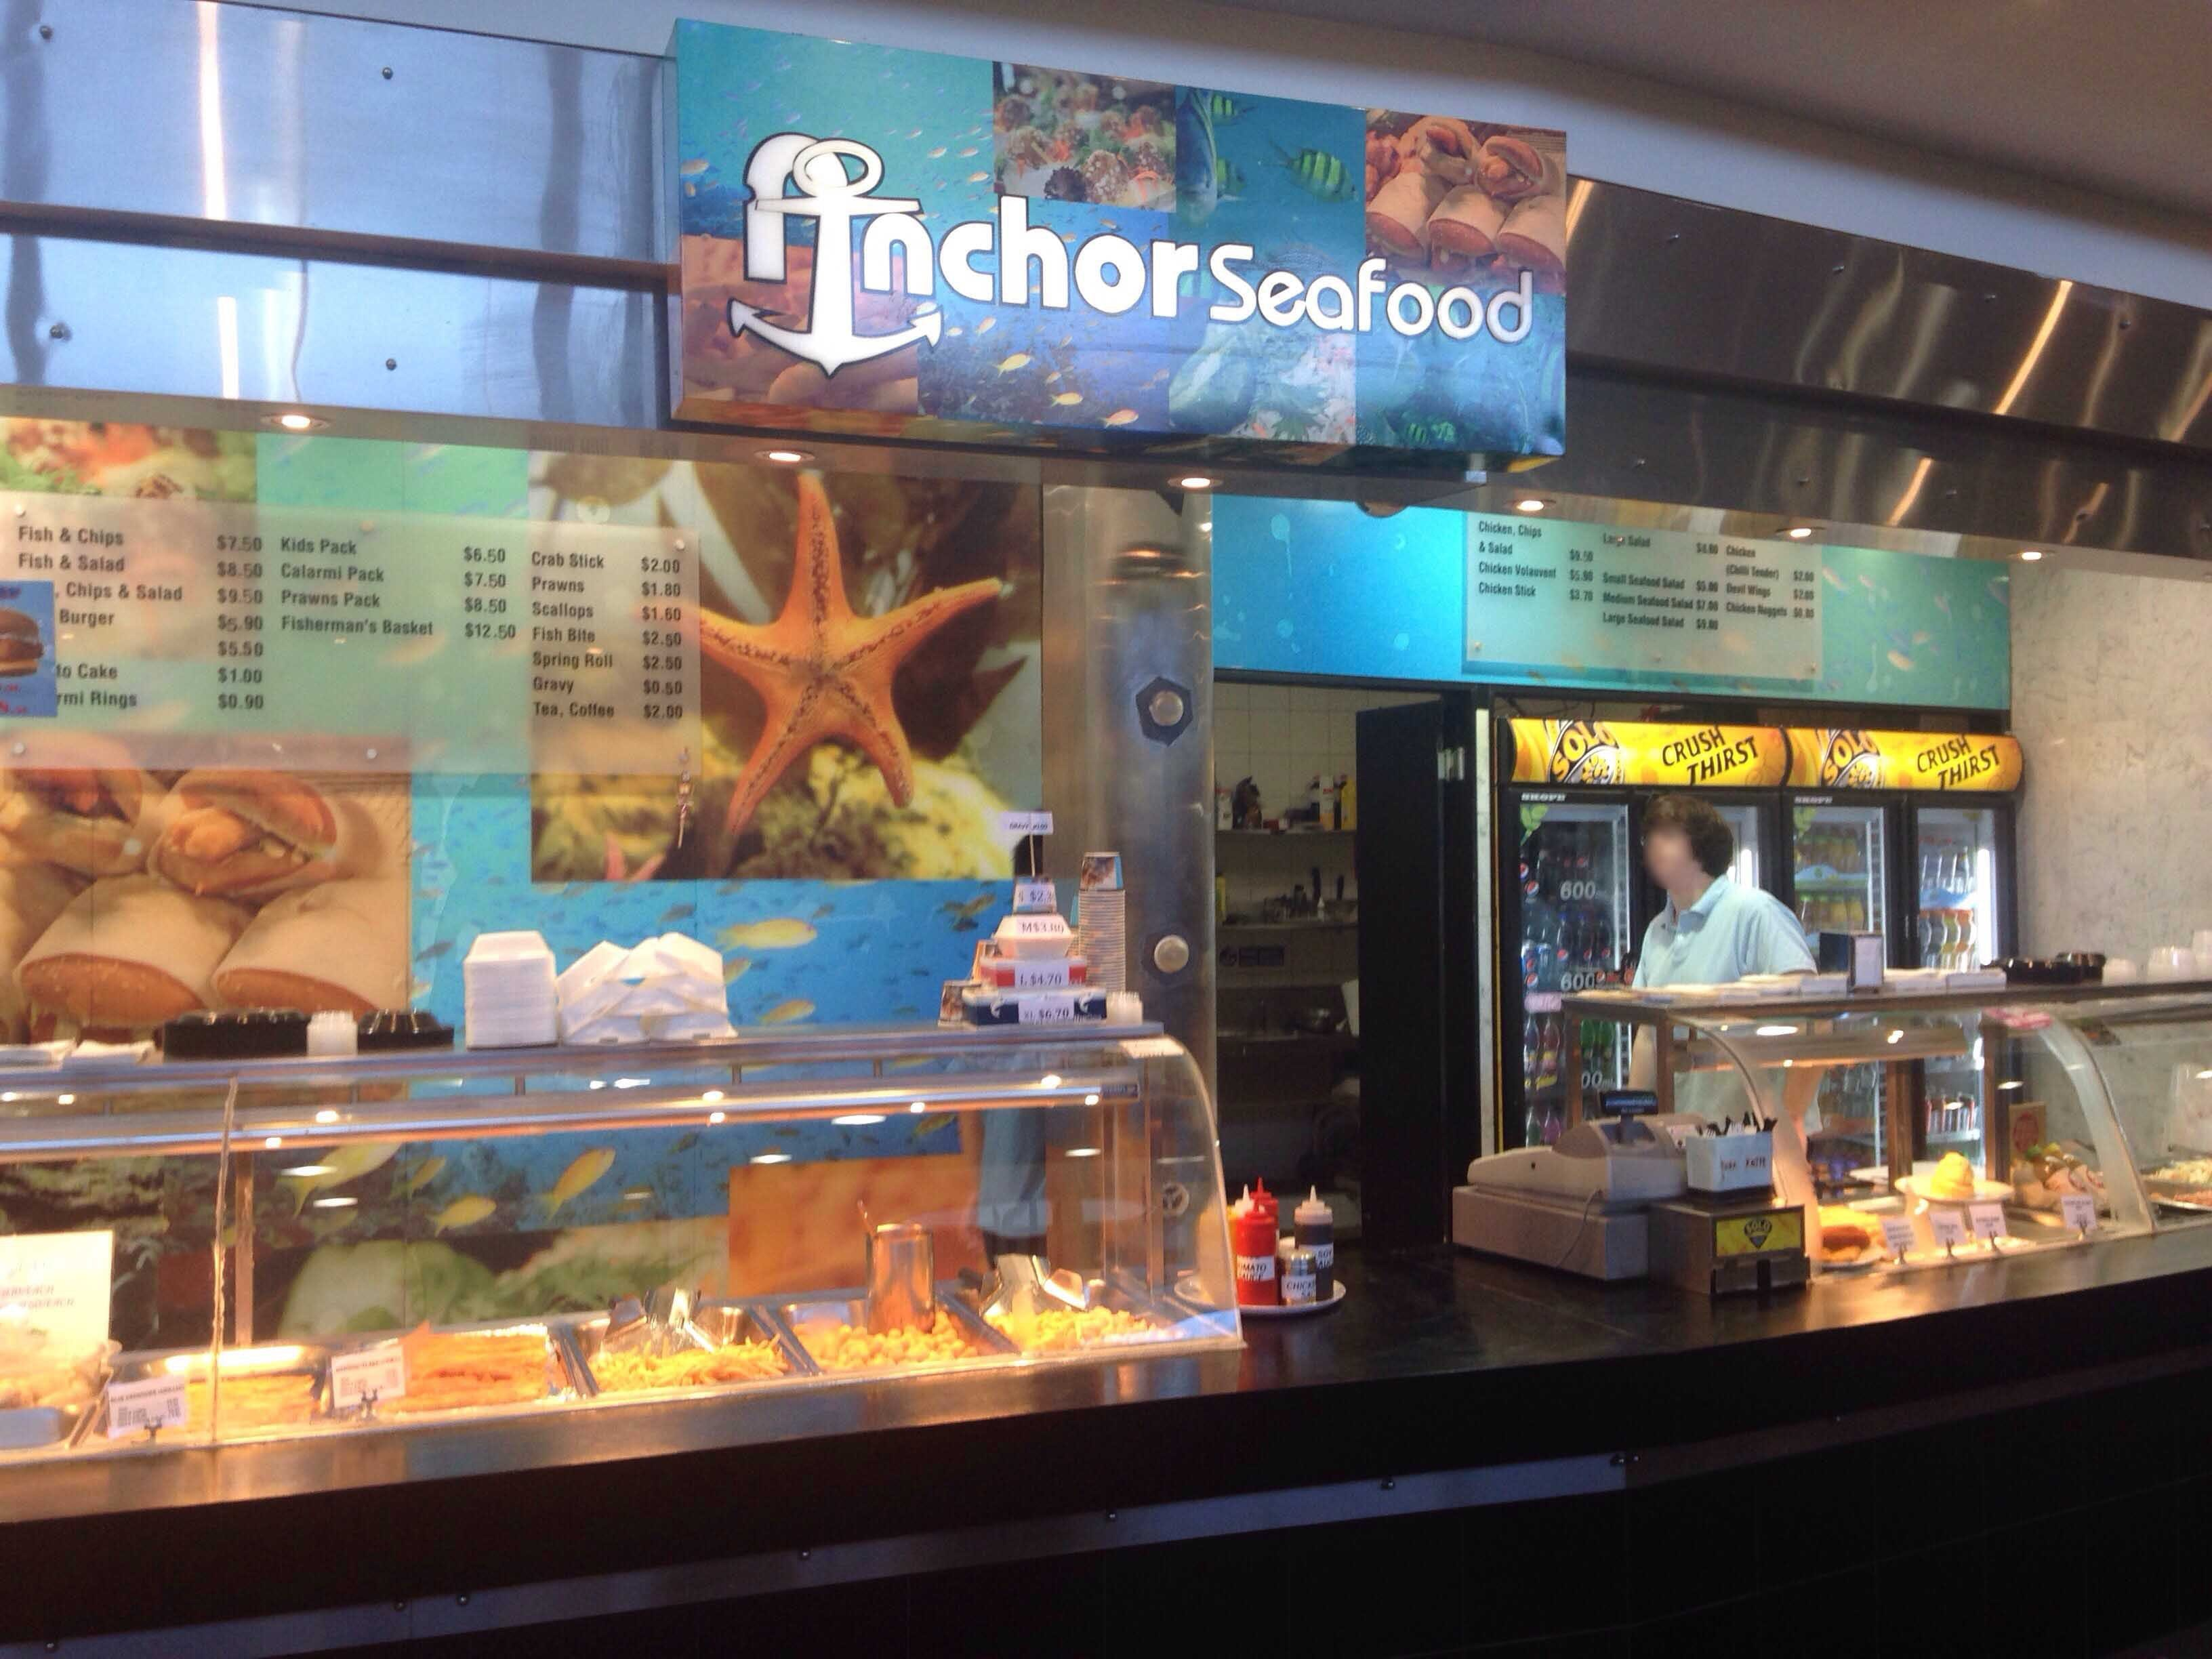 Anchors Seafood - Pubs Perth